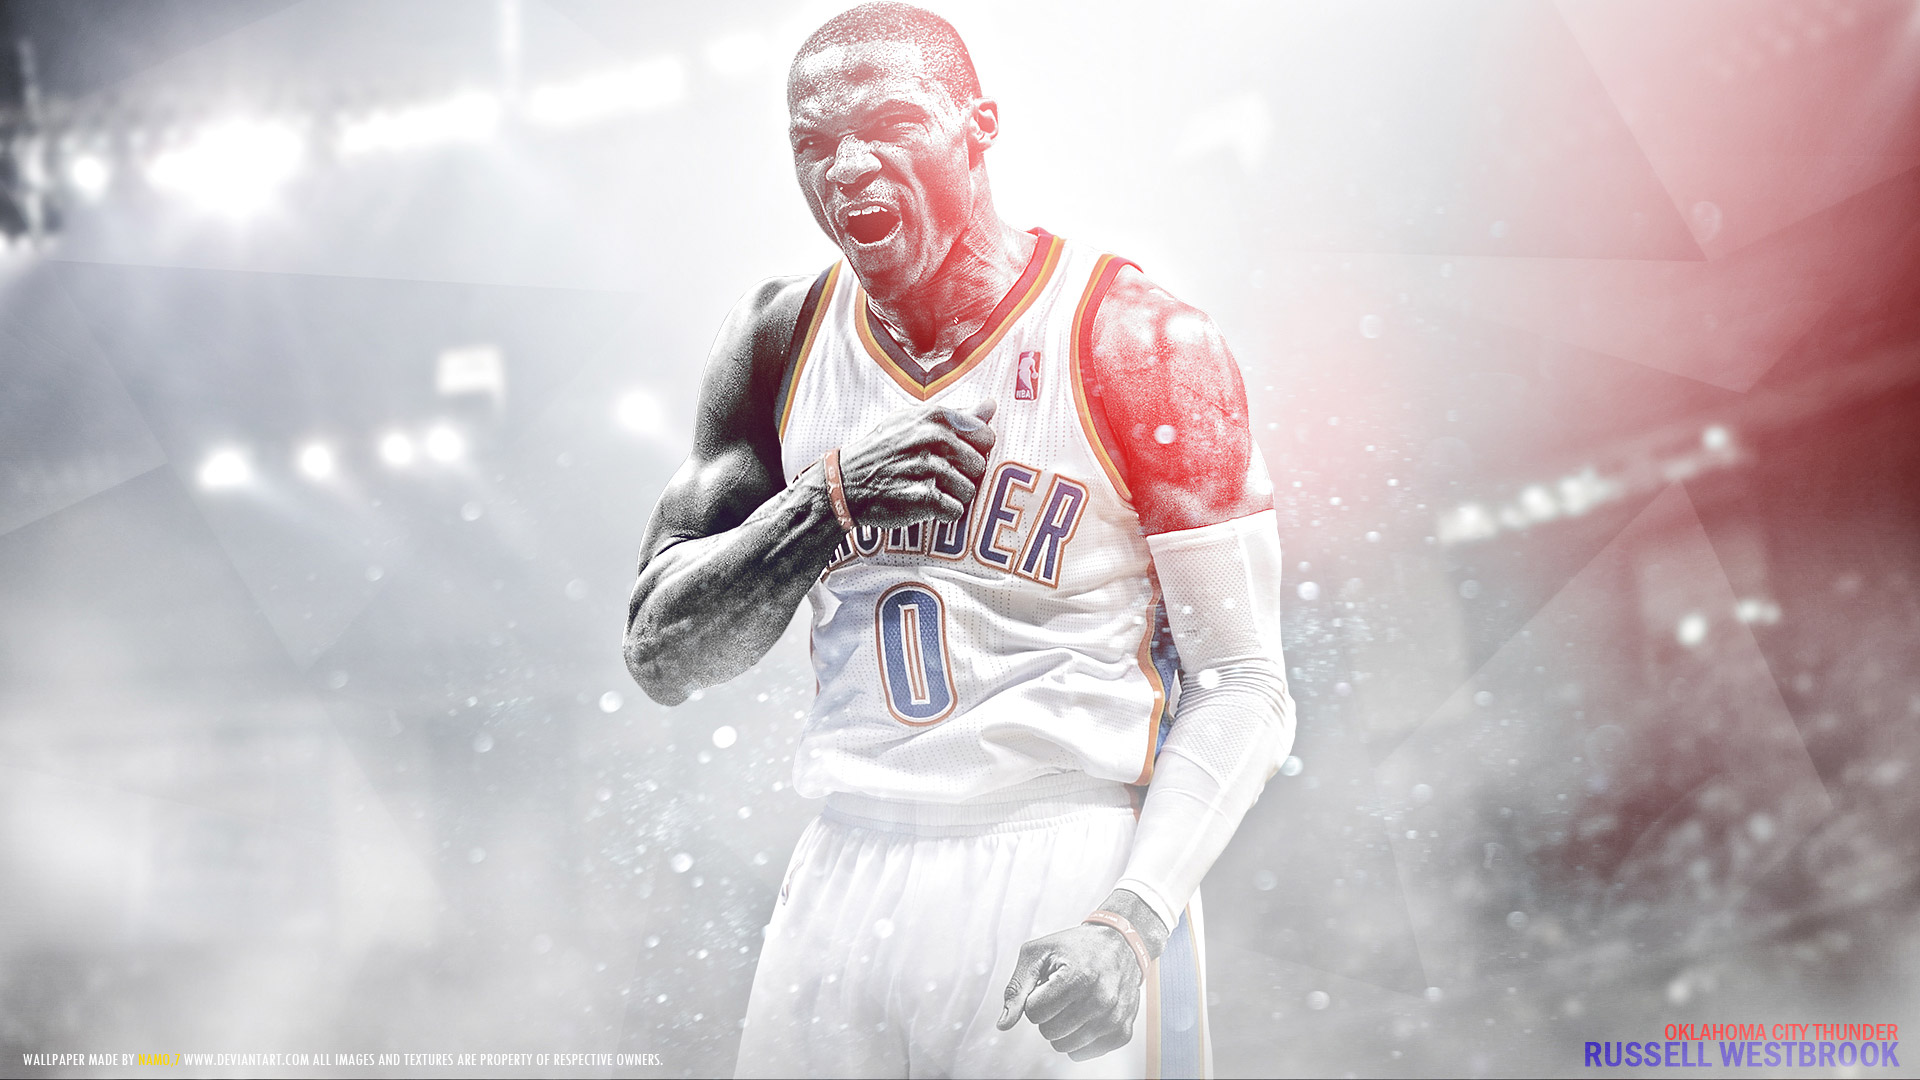 Westbrook Wallpaper